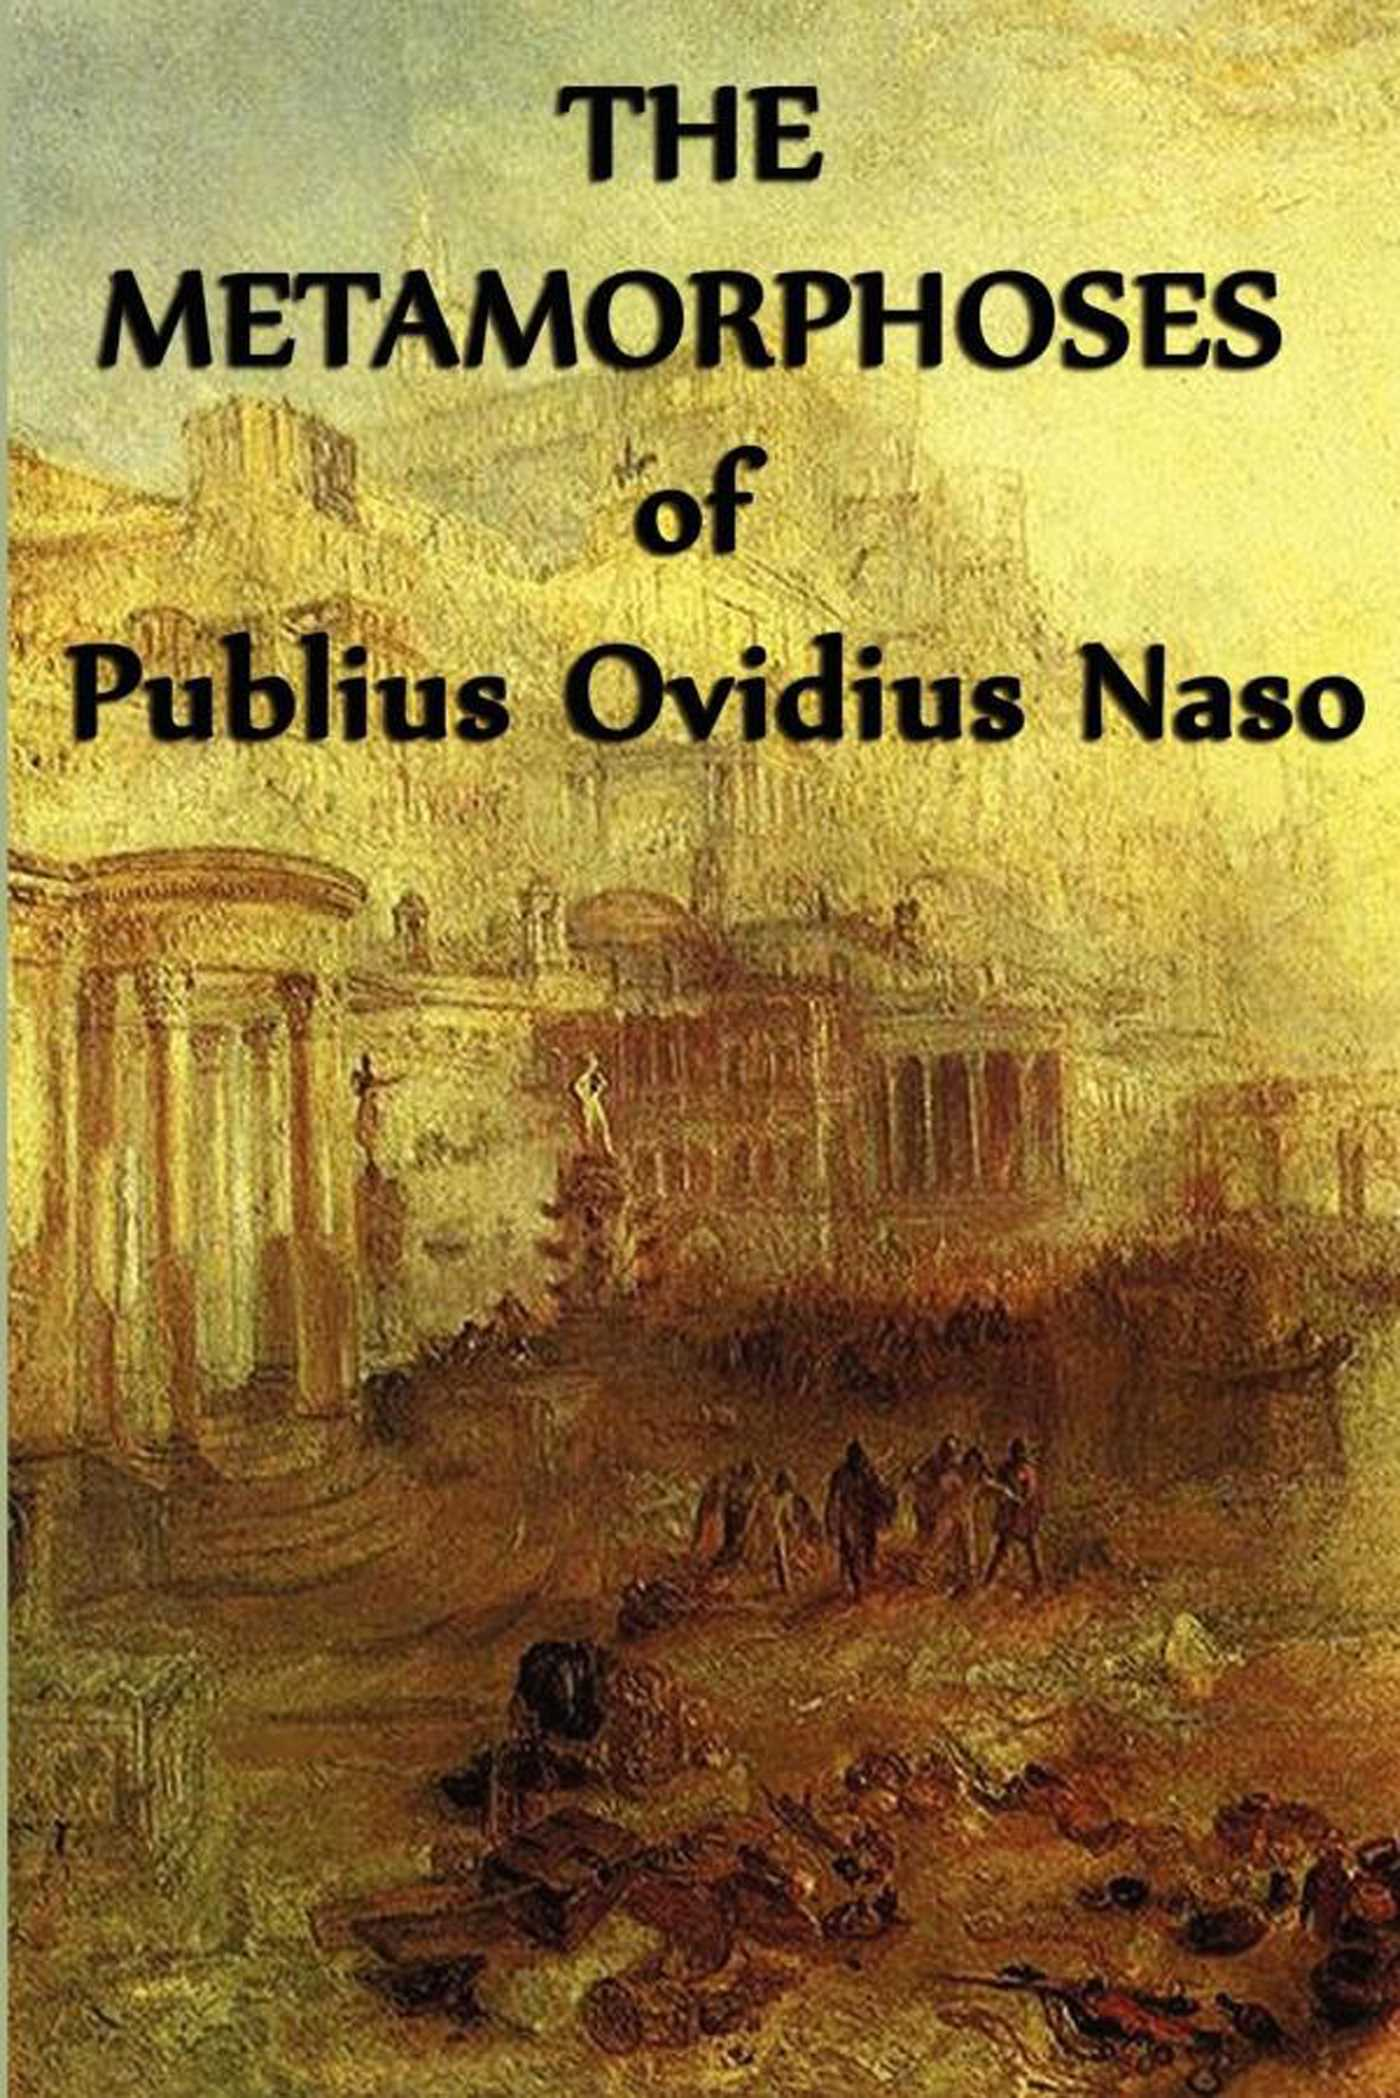 The Metamorphoses of Publius Ovidius Naso eBook by Ovid